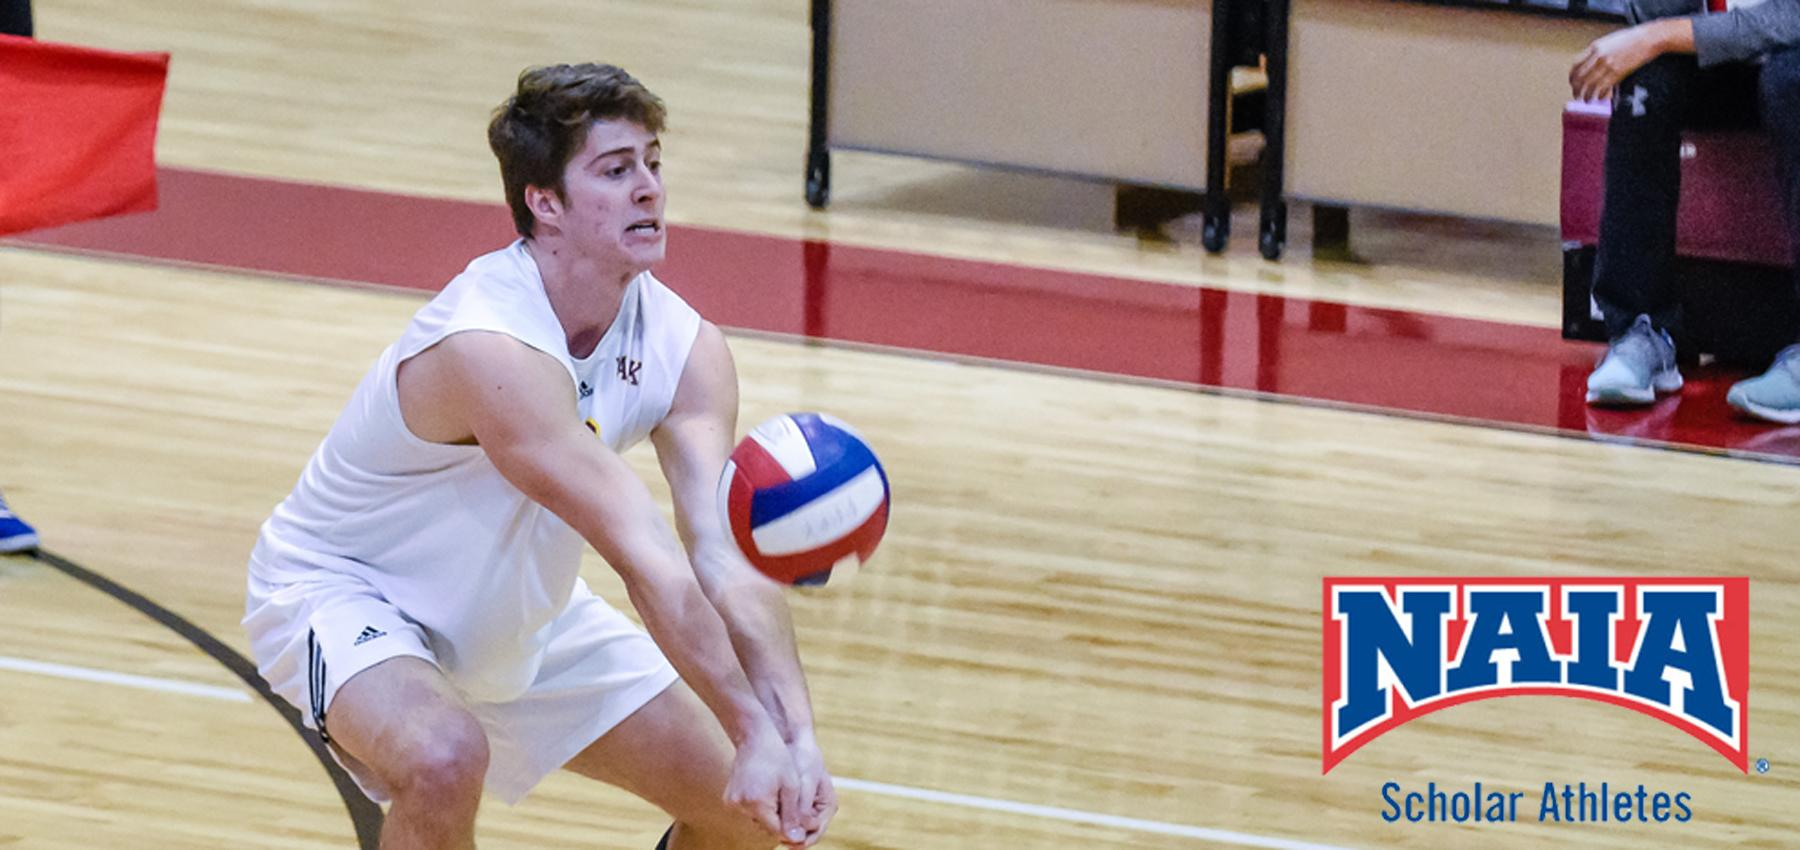 Victor Neves was named to the 2017 Daktronics-NAIA Men's Volleyball Scholar-Athlete Team.